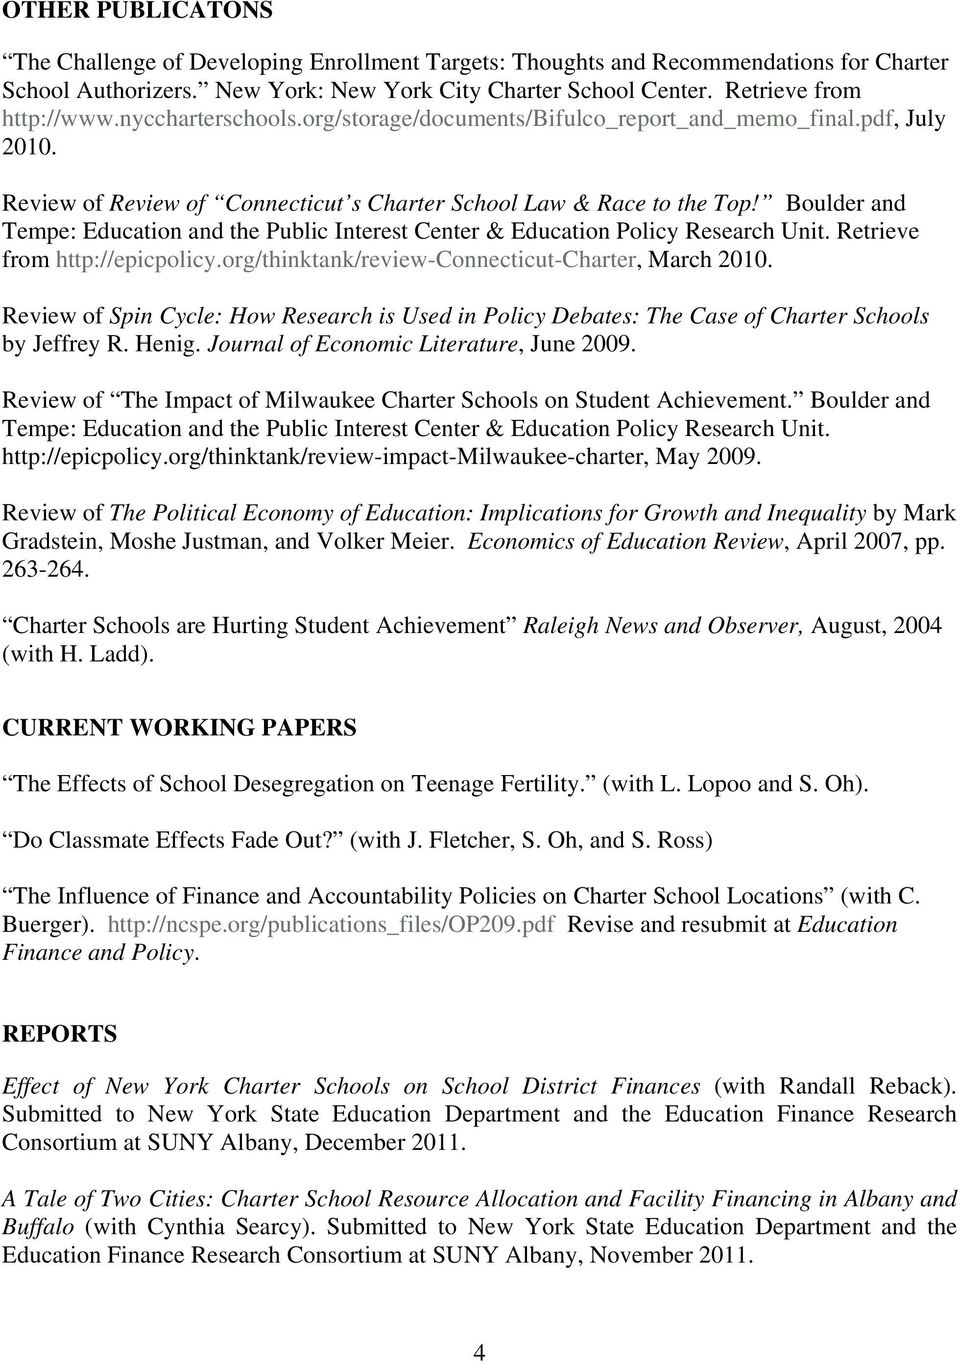 Boulder and Tempe: Education and the Public Interest Center & Education Policy Research Unit. Retrieve from http://epicpolicy.org/thinktank/review-connecticut-charter, March 2010.